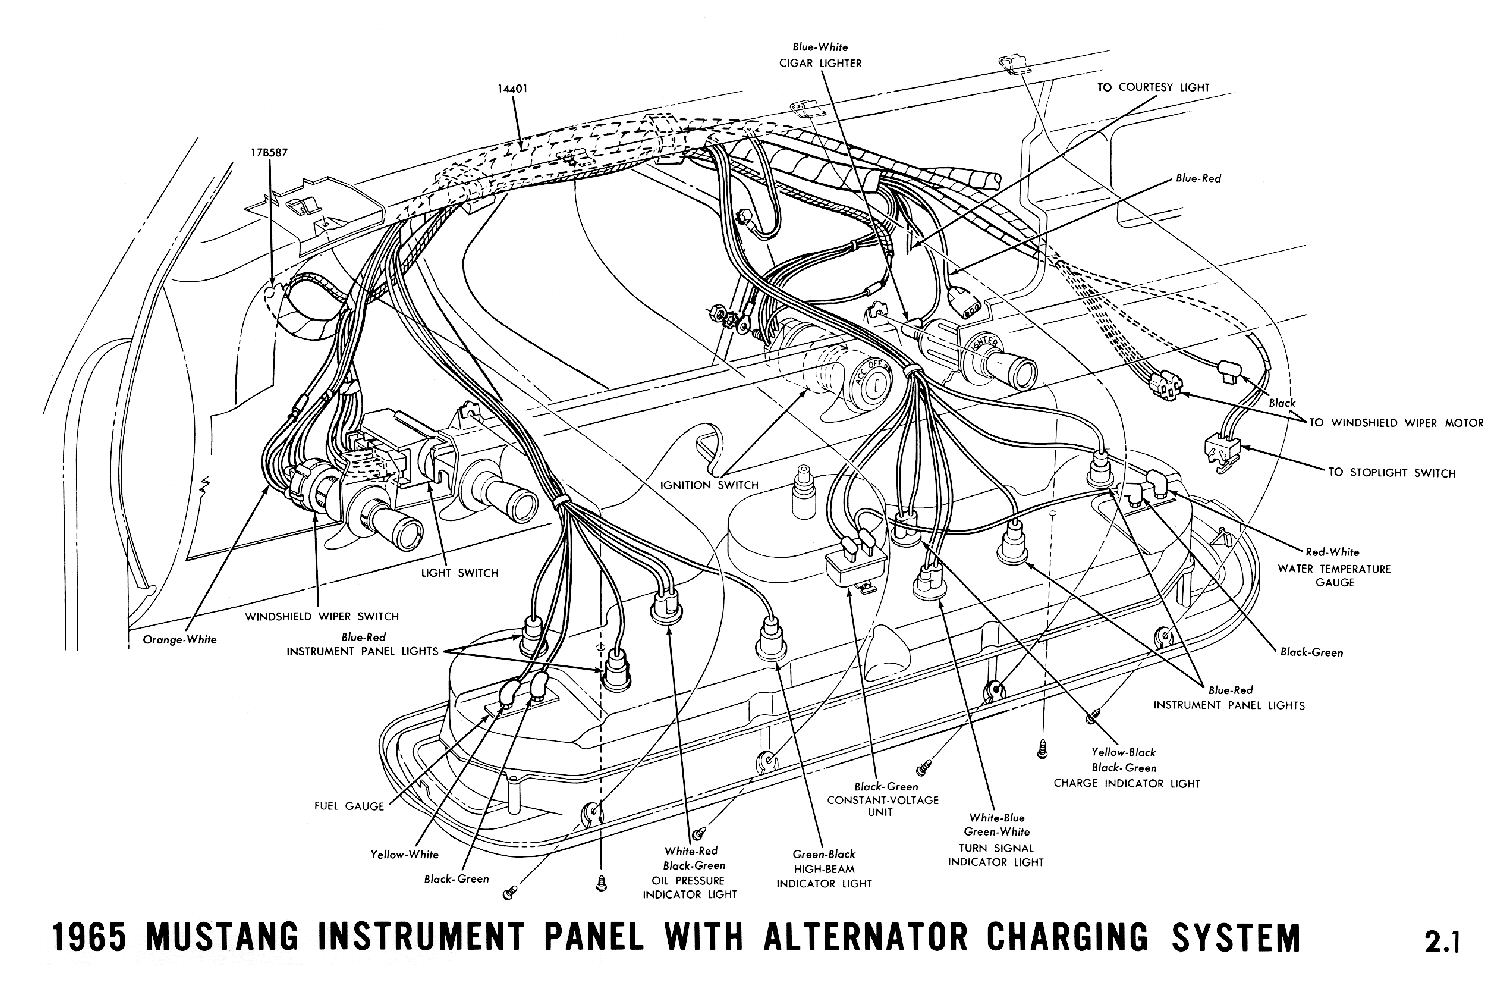 1965 Mustang Wiring Diagrams on dodge rear wiper motor schematic